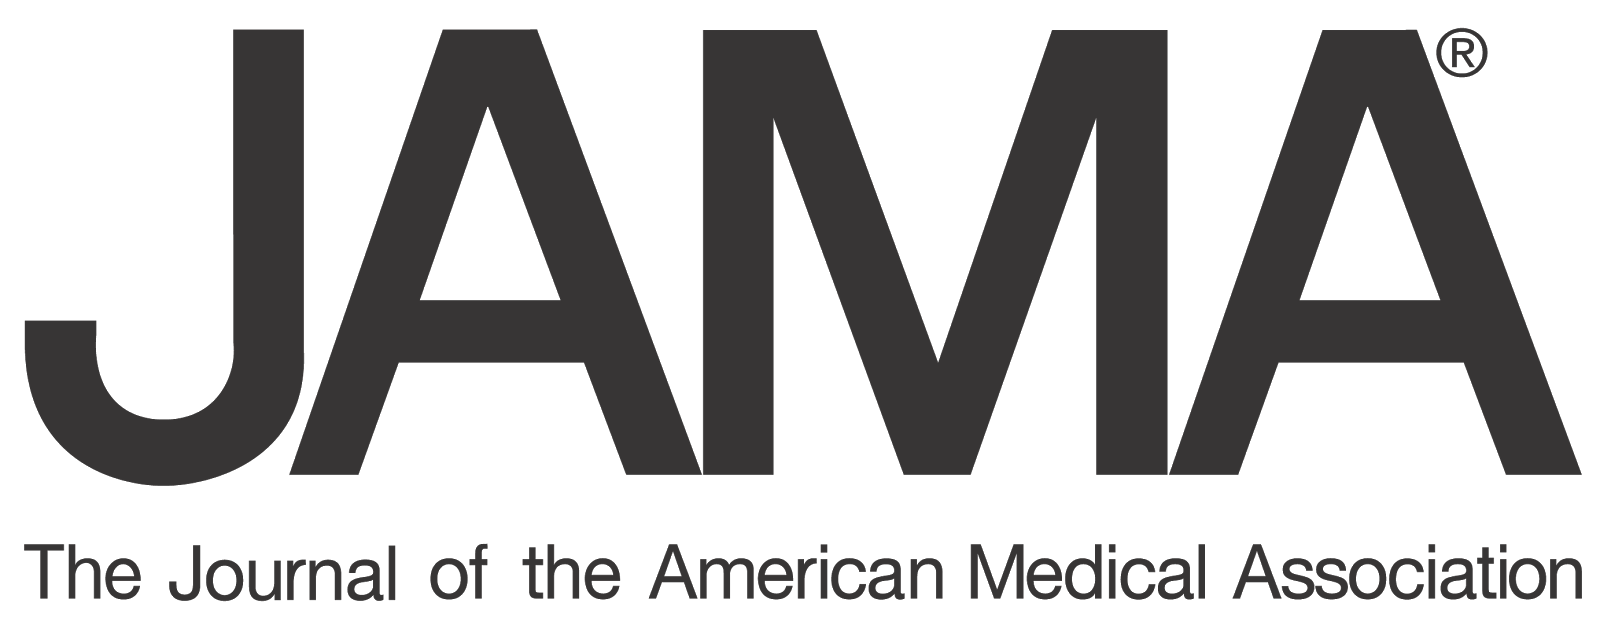 Androgen Study Group Petition JAMA to Retract Article